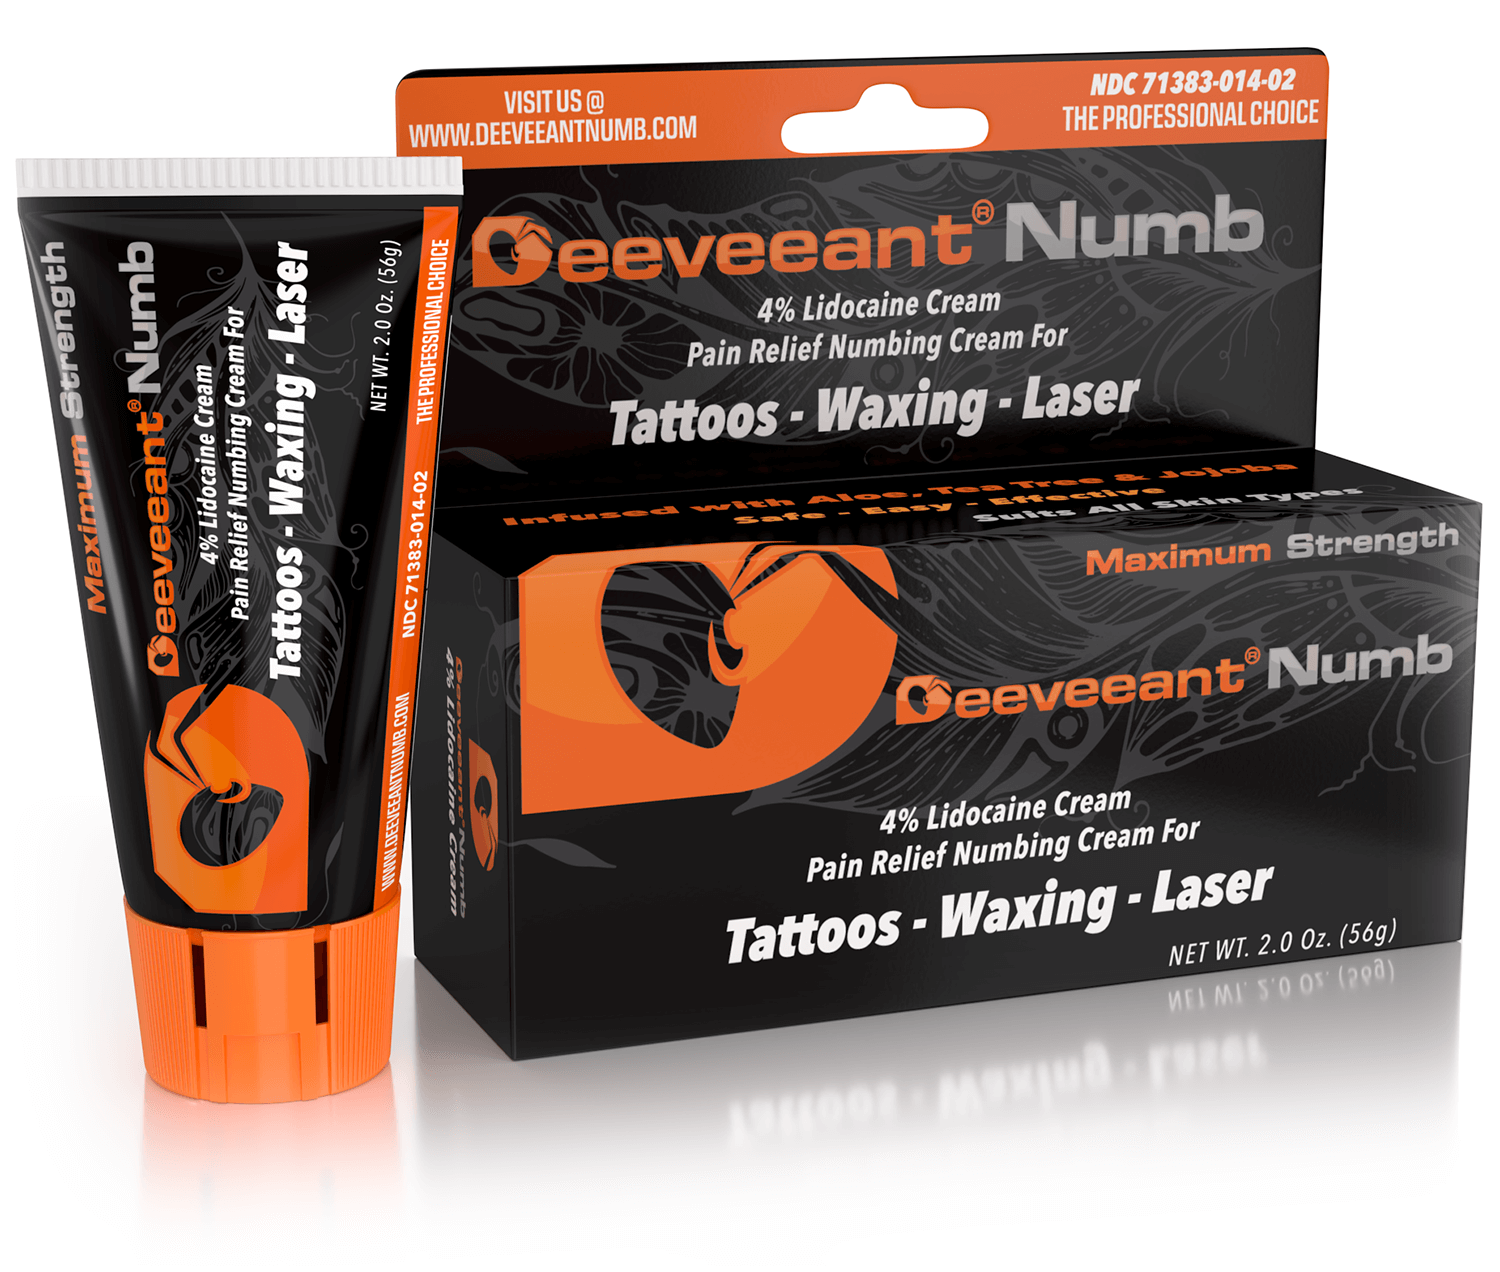 Deeveeant Numb Tattoo & Waxing Lidocaine Numbing Cream Anesthetic